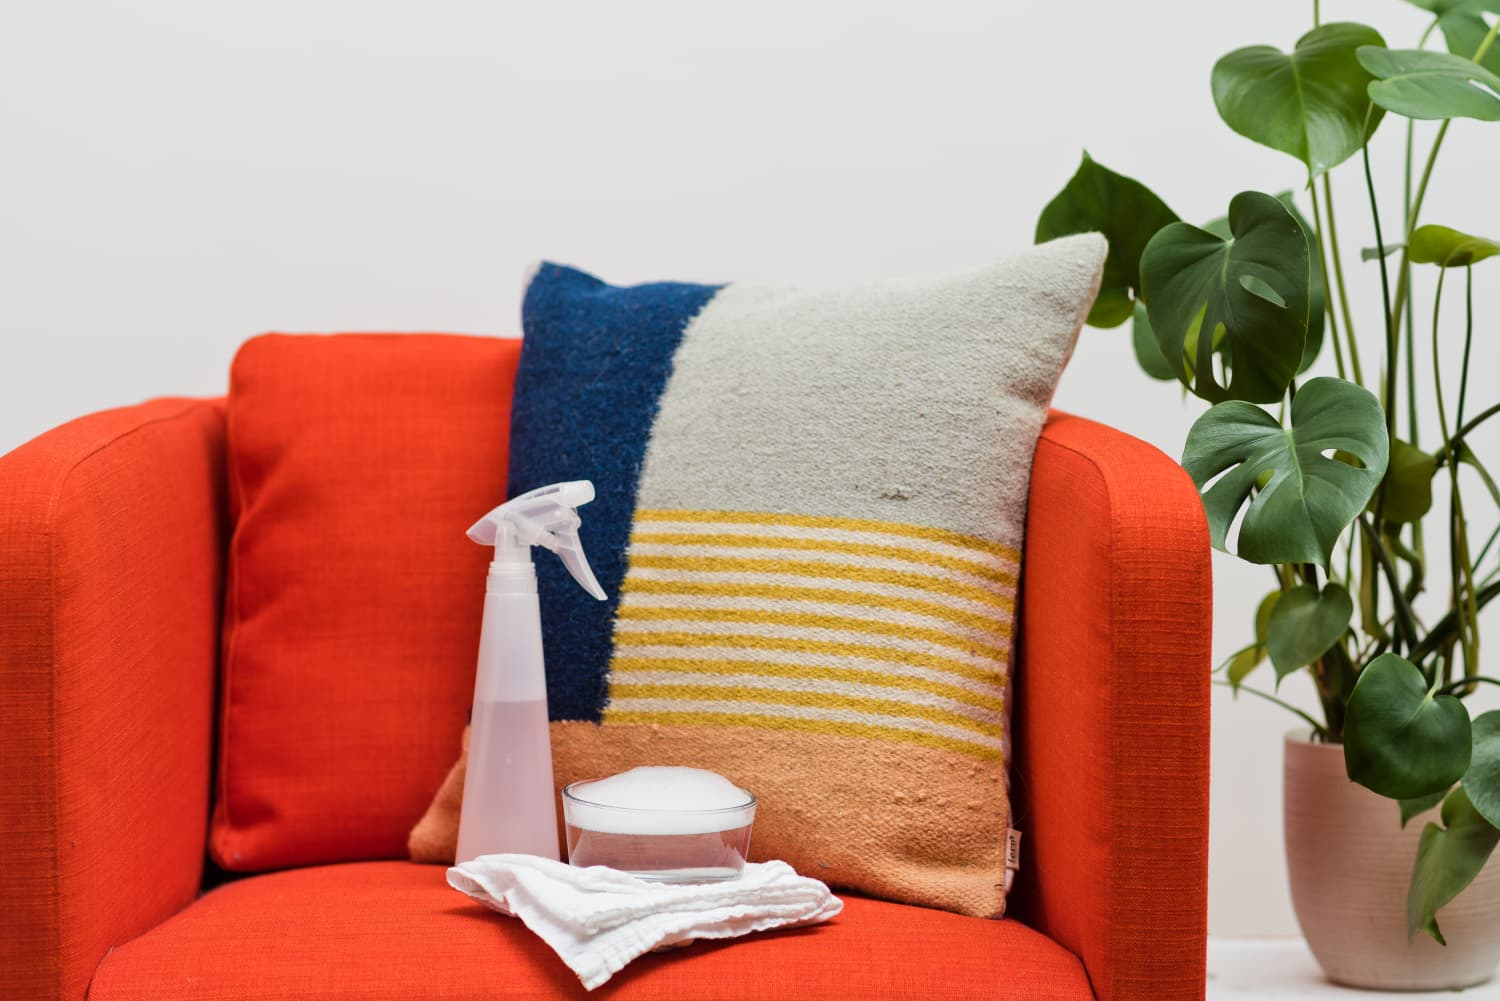 How to Clean Upholstery & Couch Stains - Remove Couch ...